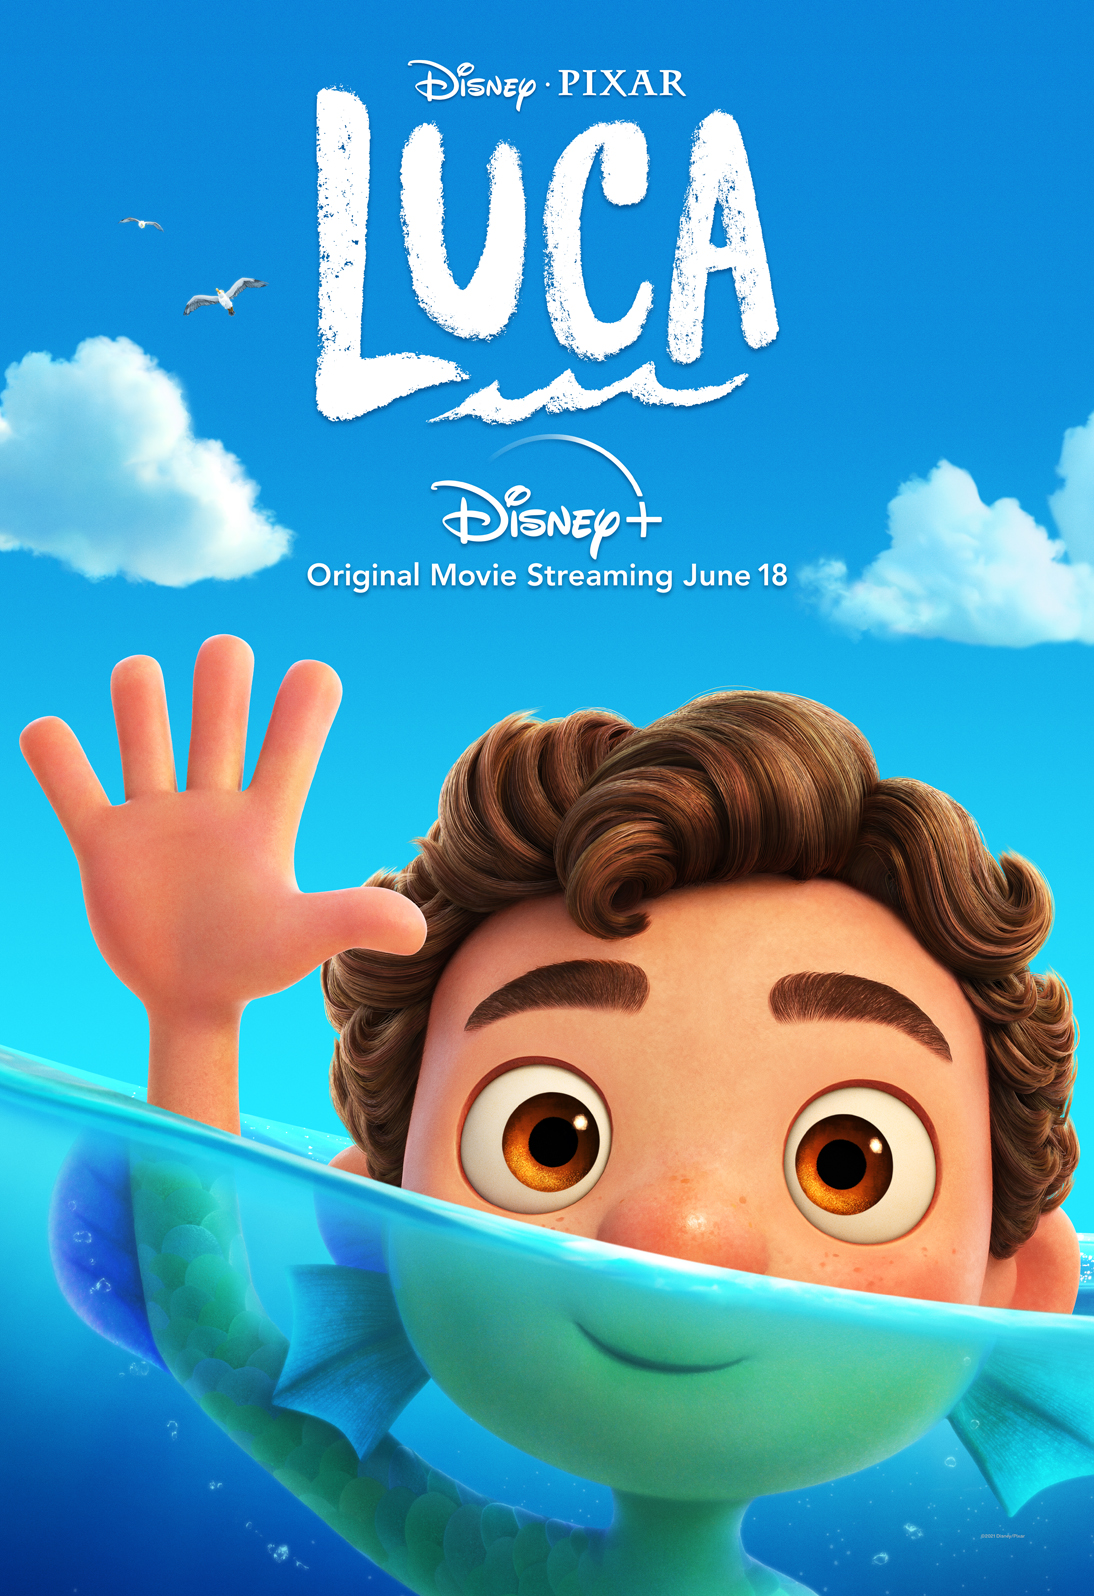 Are you gearing up to watch Pixar's latest release? This Luca movie review from each member of the family will help you decide what ages the movie is best for!